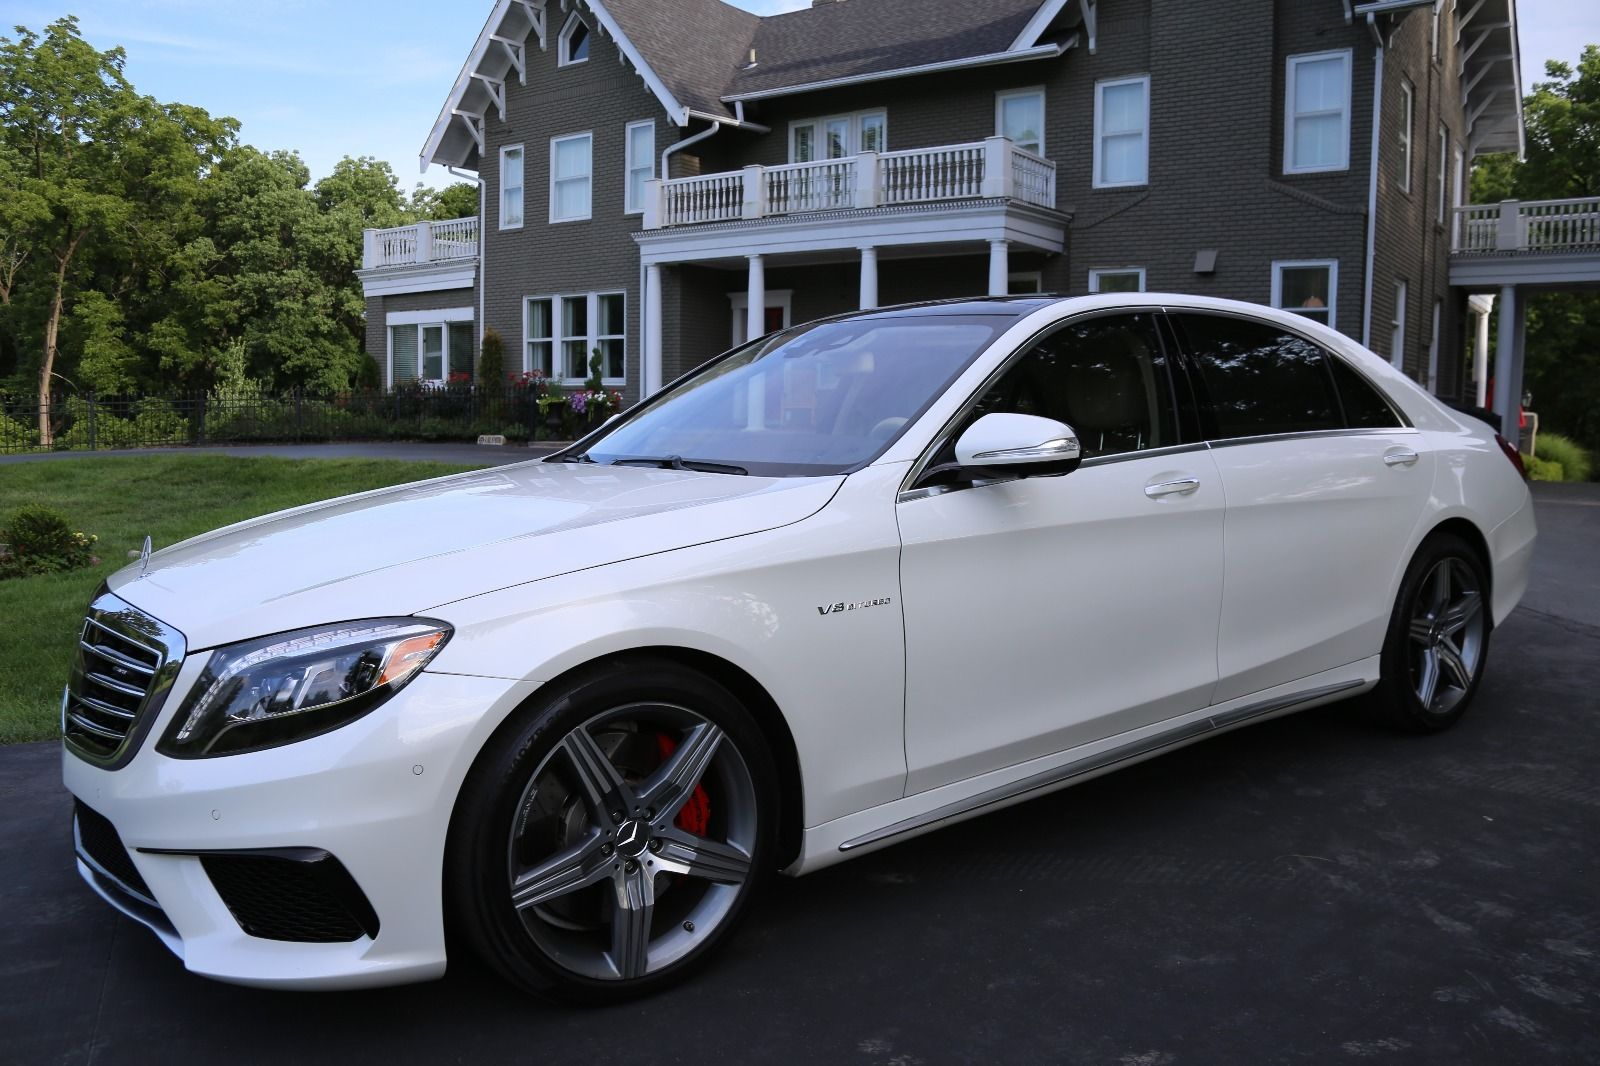 2015 mercedes benz w222 s63 amg v8 biturbo benztuning for Mercedes benz amg v8 biturbo